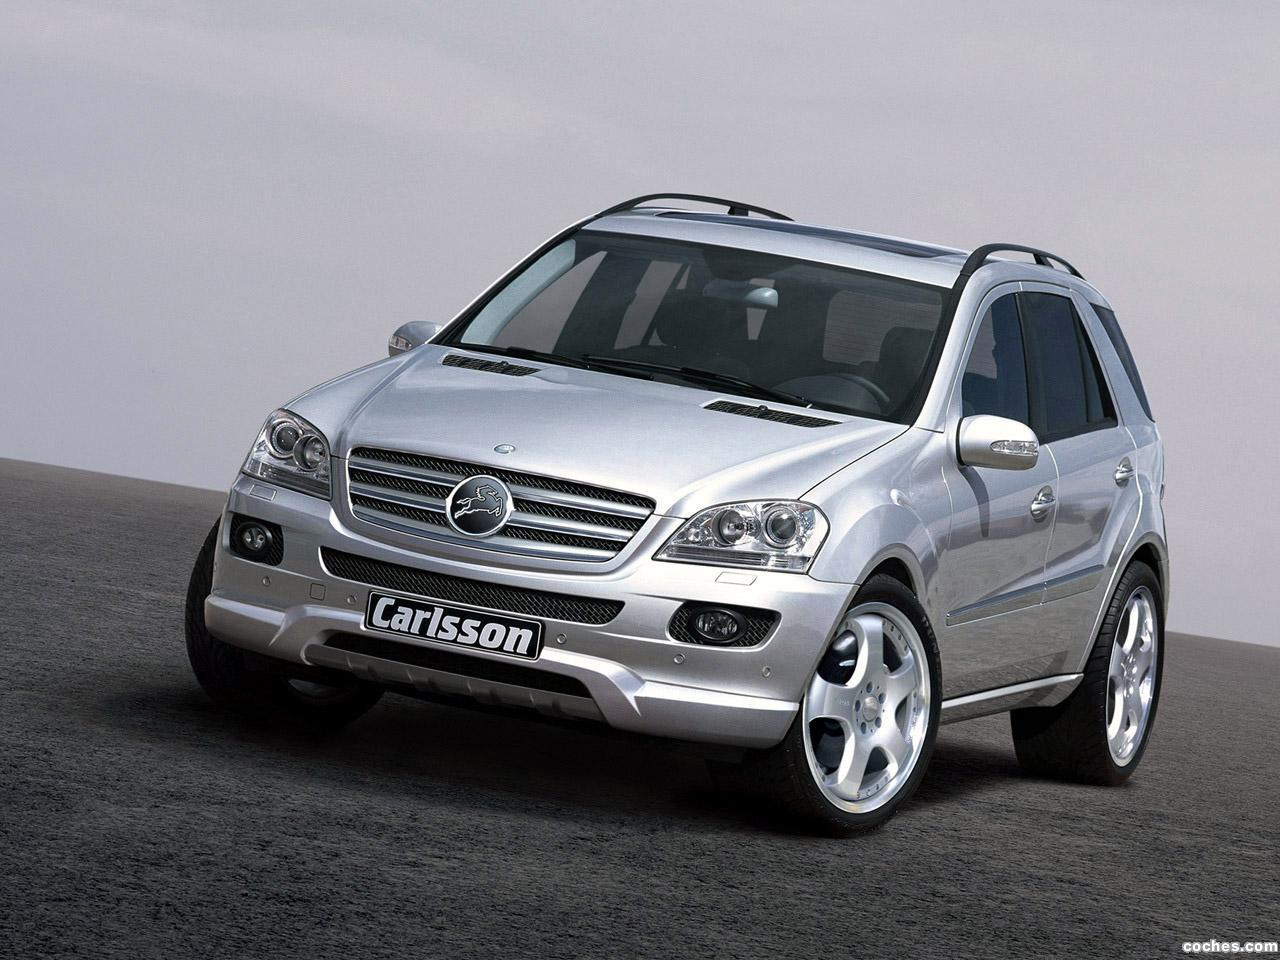 Fotos De Mercedes Carlsson Clase Ml Cm50 W164 2012